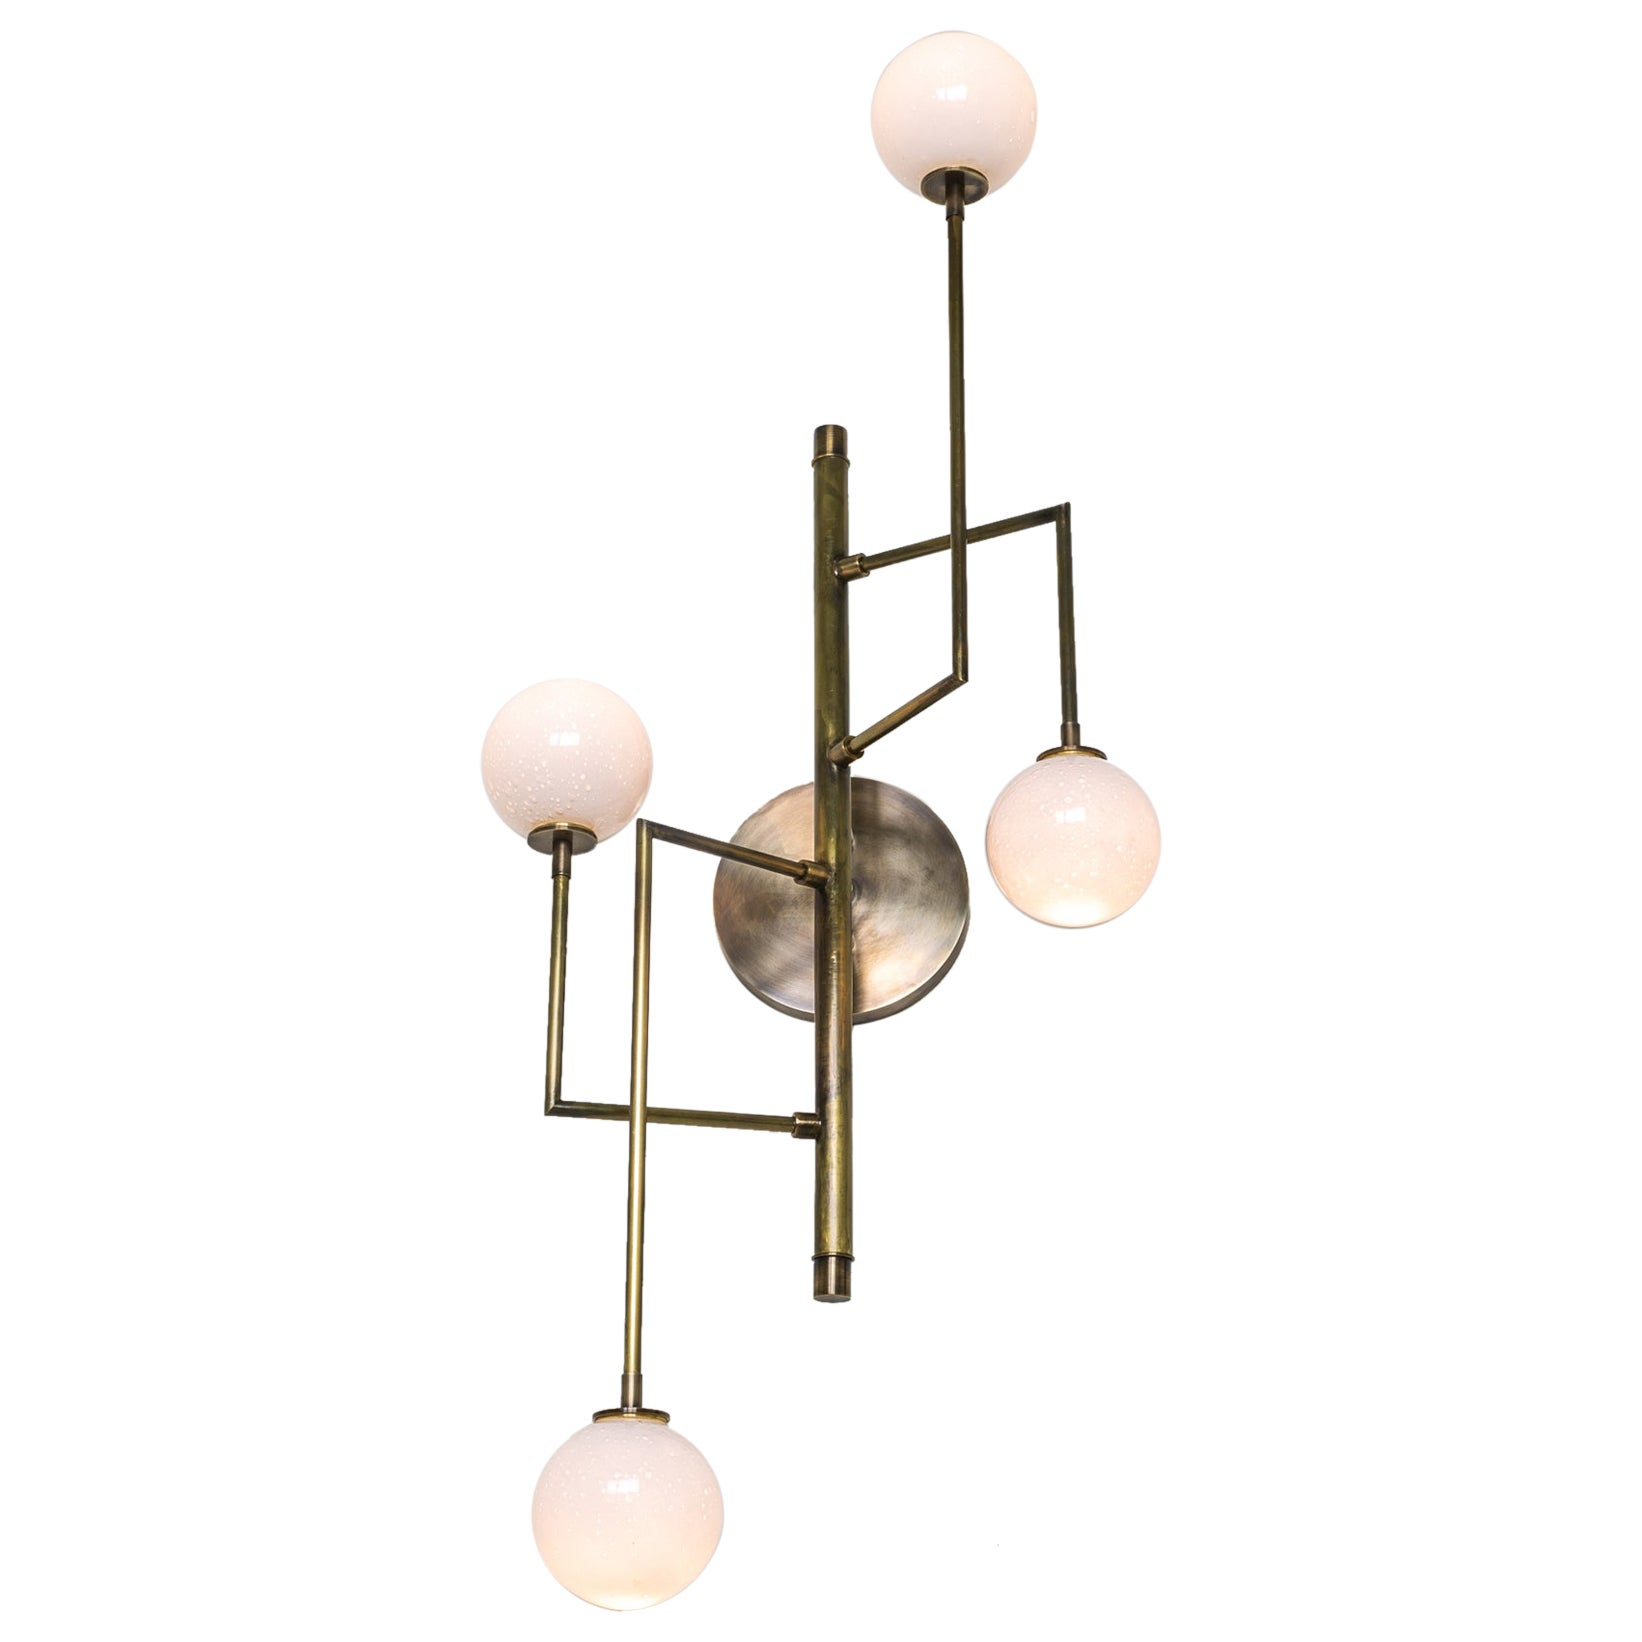 Halo Sconce 4, Brass, Hand Blown Glass Contemporary Wall Sconce, Kalin Asenov